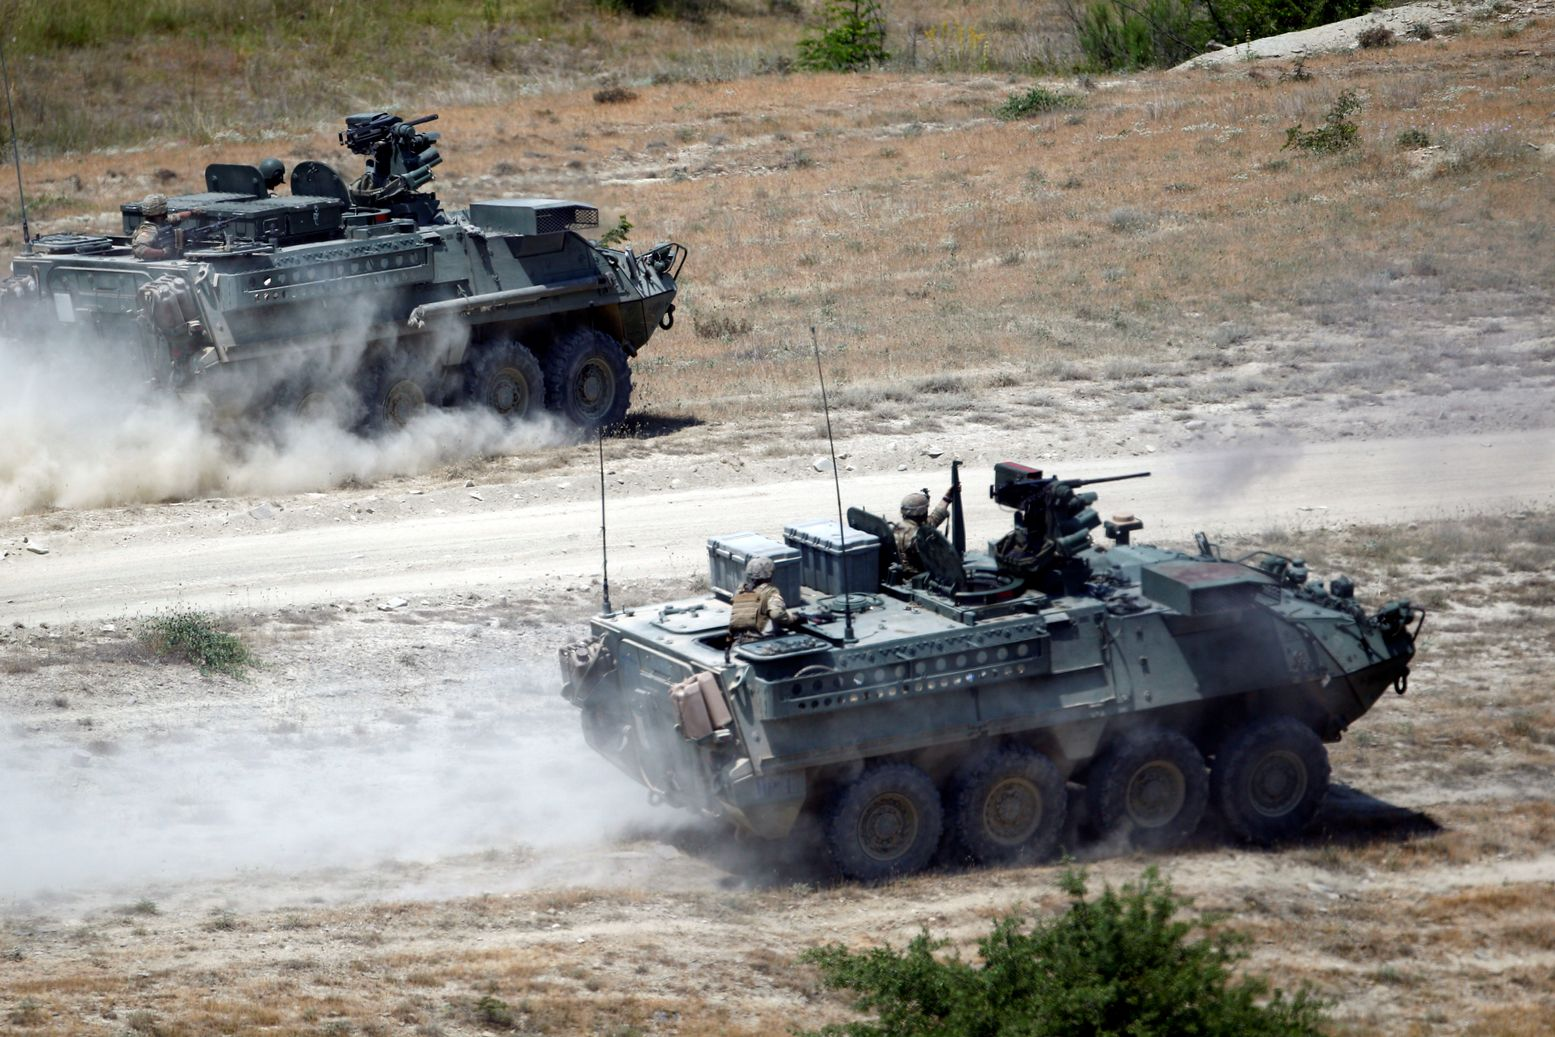 The Army Wants the Shift Away from Russia and Focus on the Threat from China